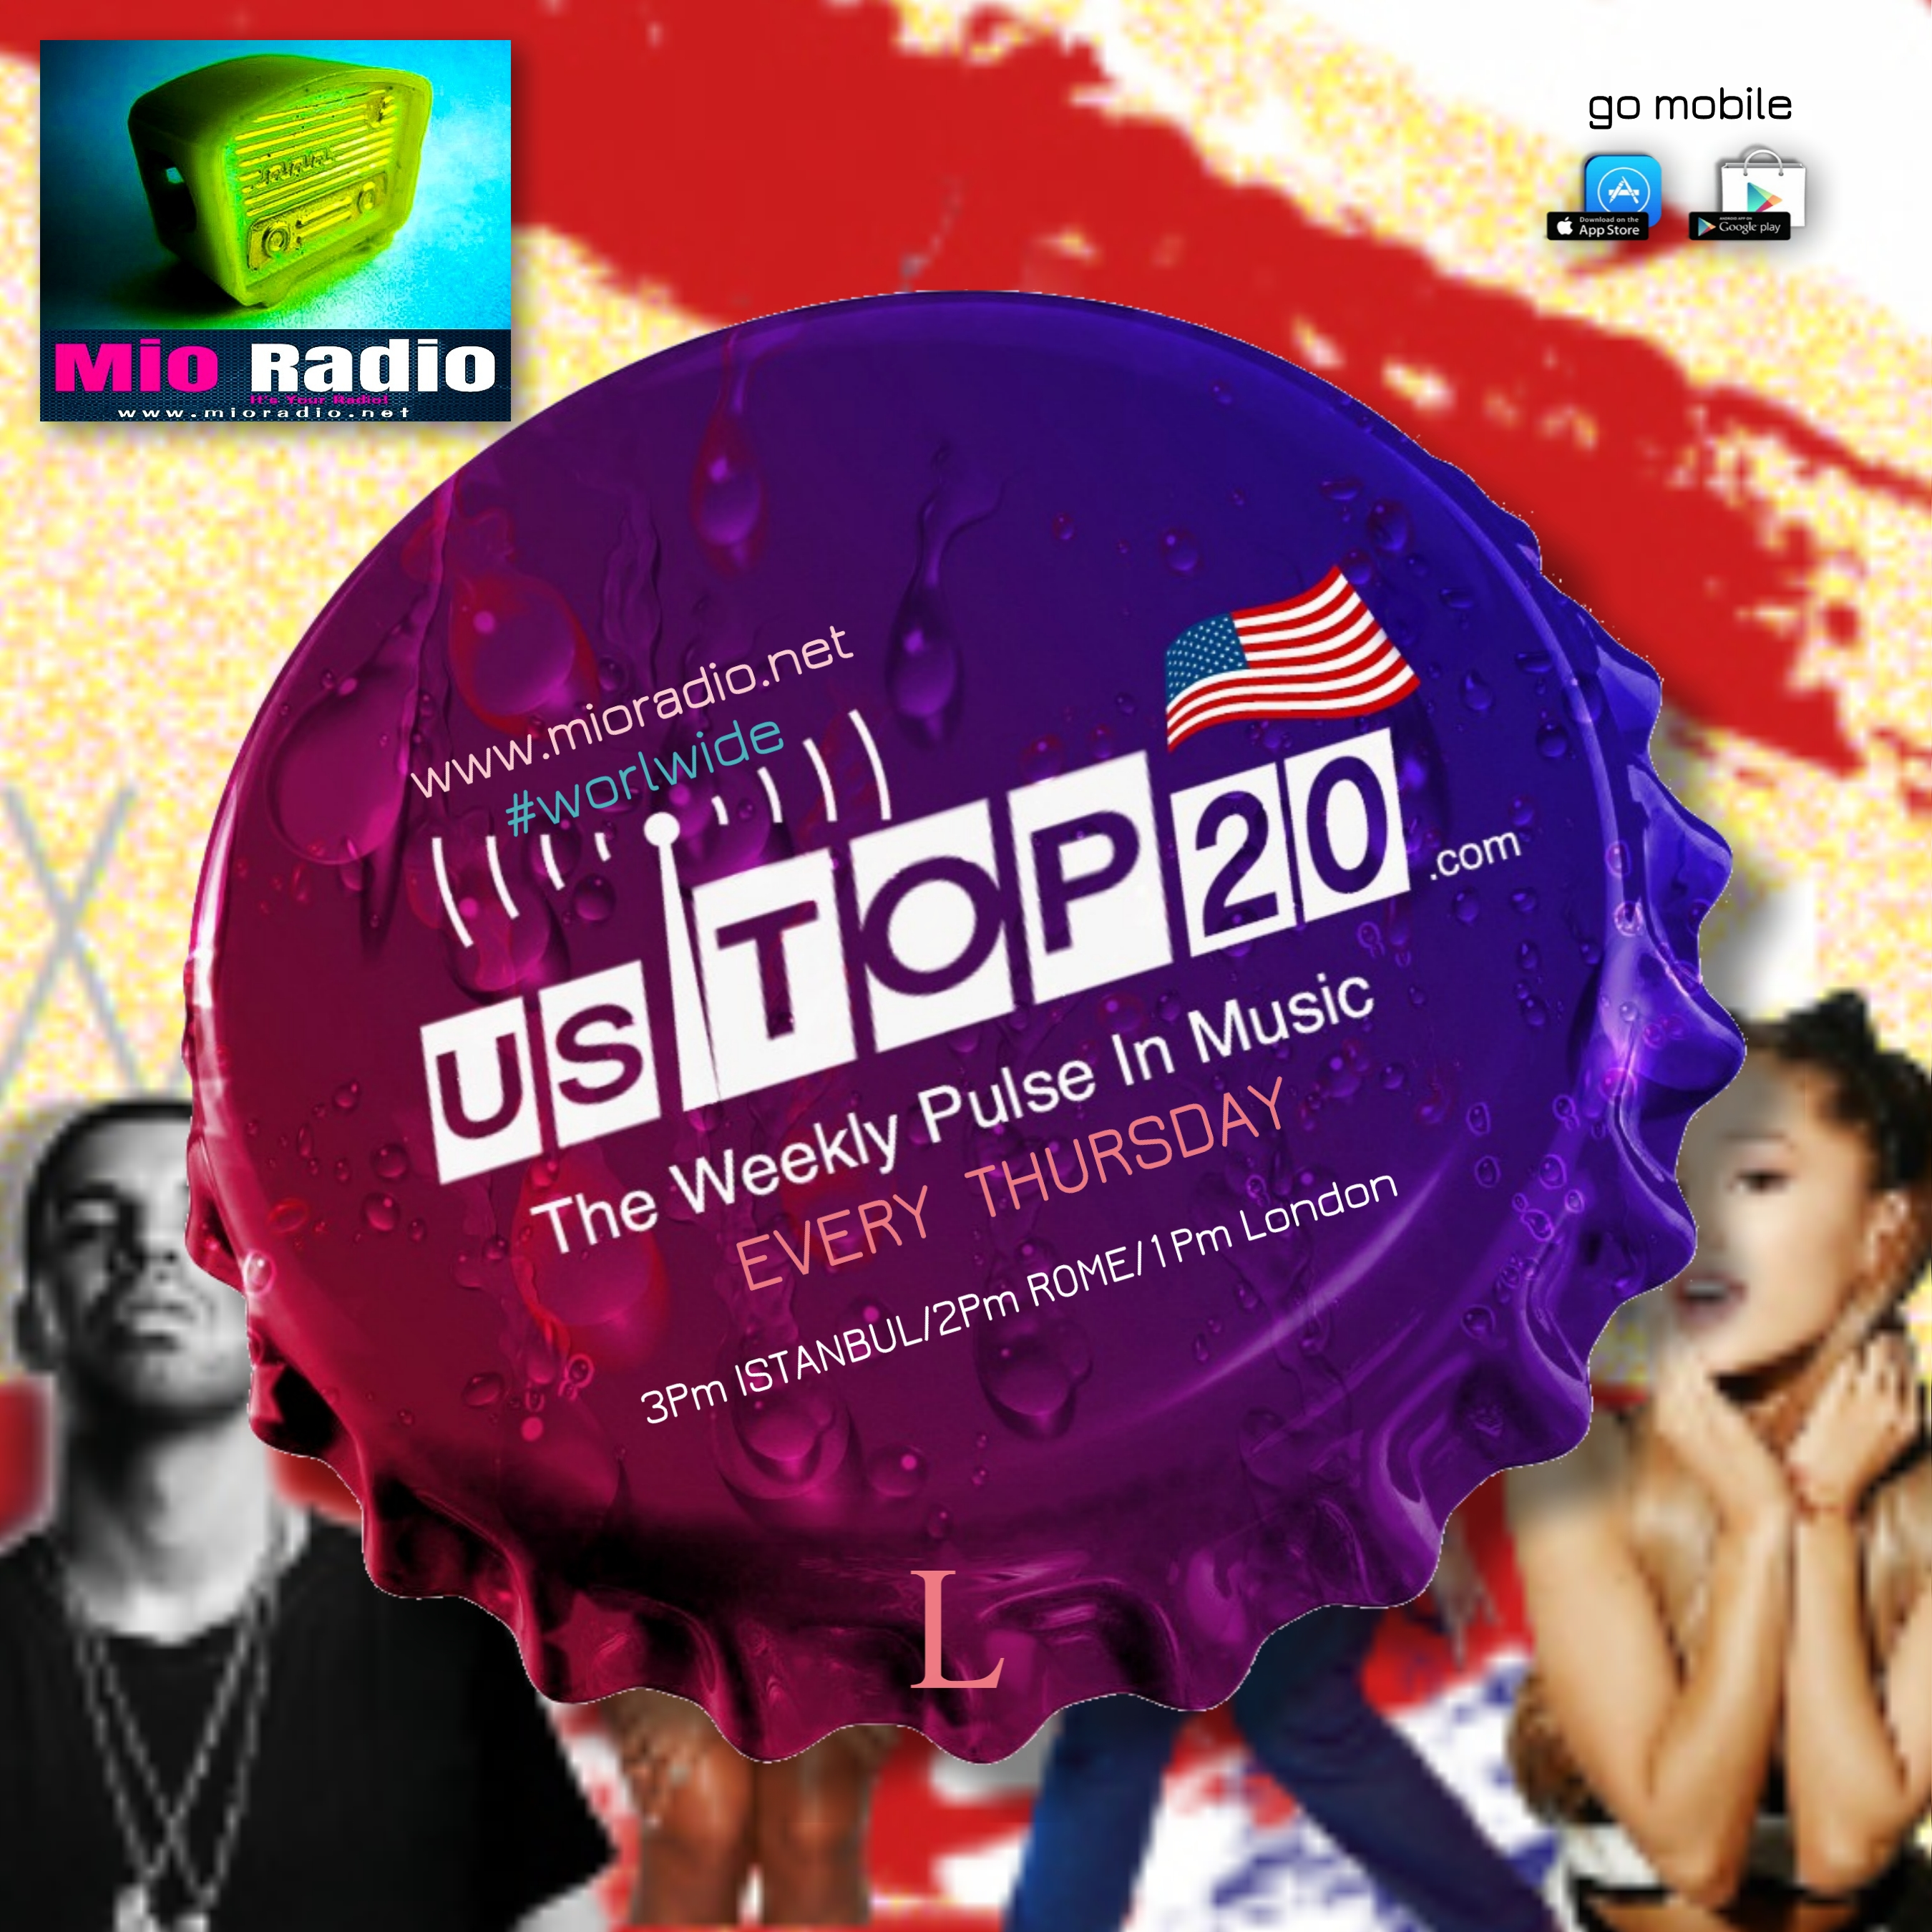 US TOP 20 Mio Radio Logo 1